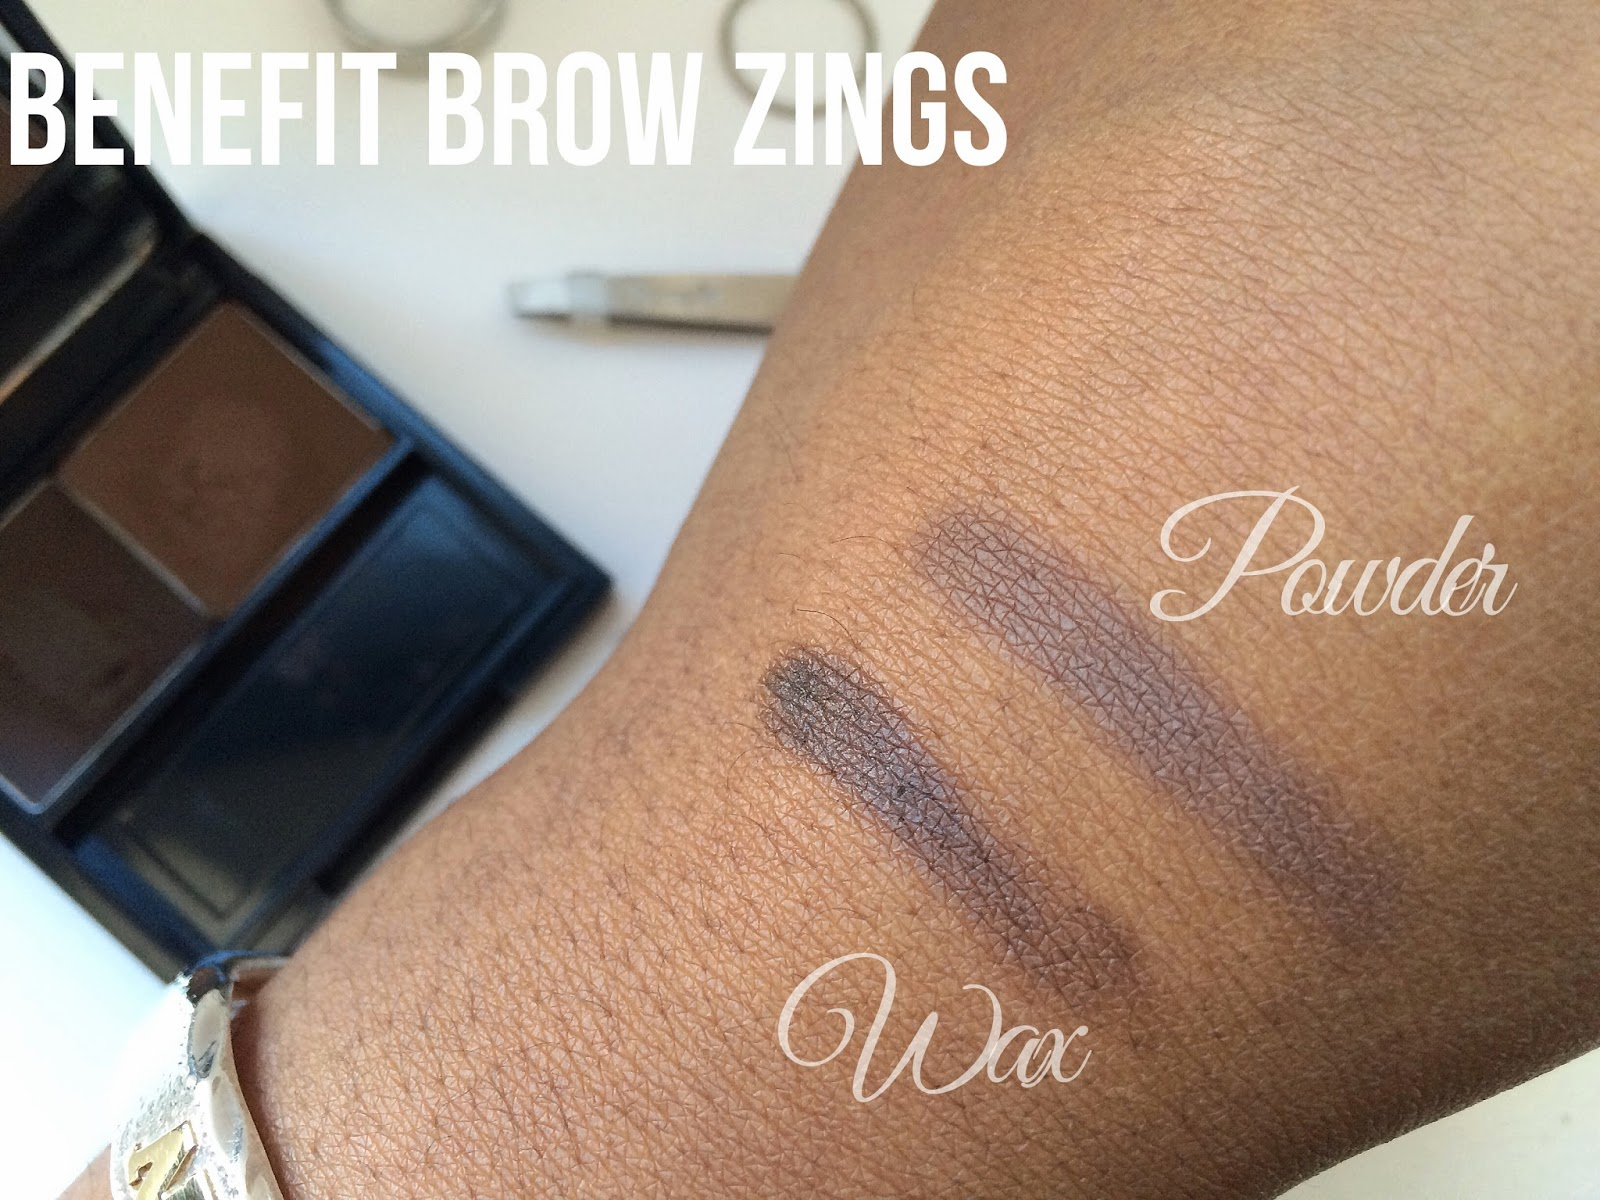 Brow Zings Eyebrow Shaping Kit by Benefit #6